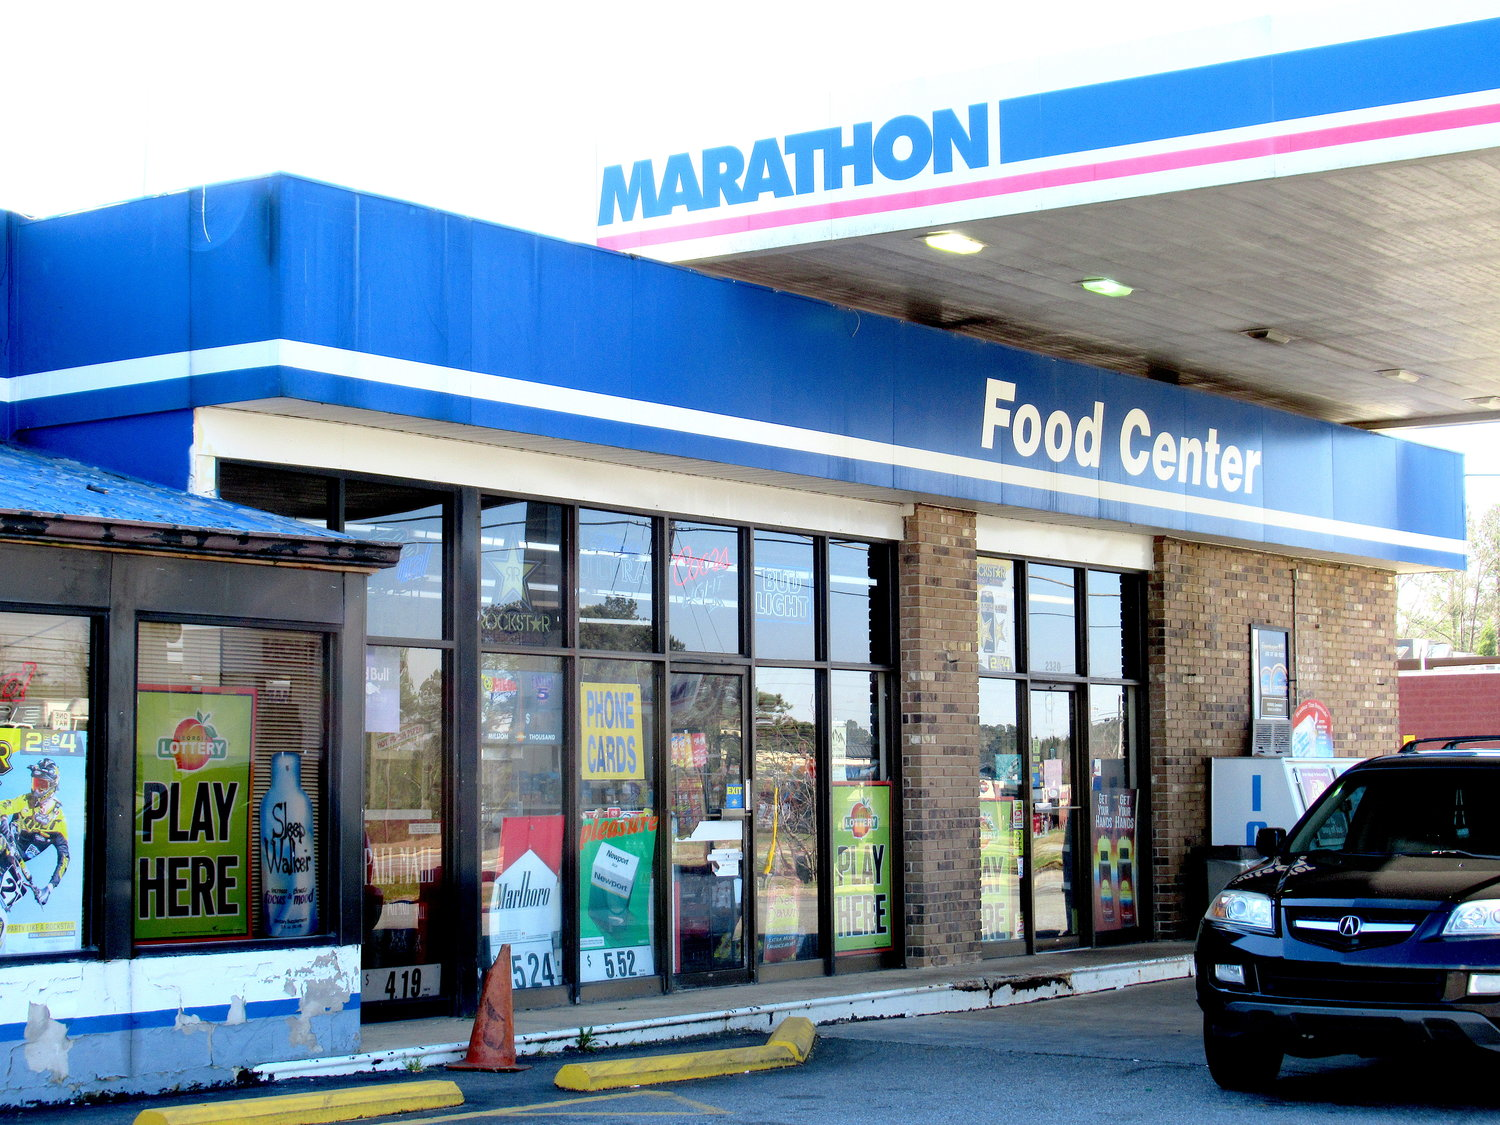 The Marathon-branded gas station at 2320 Highway 411 NE was raided by the Georgia Bureau of Investigation and the Bartow-Cartersville Drug Task Force Tuesday as part of a commercial gambling bust.